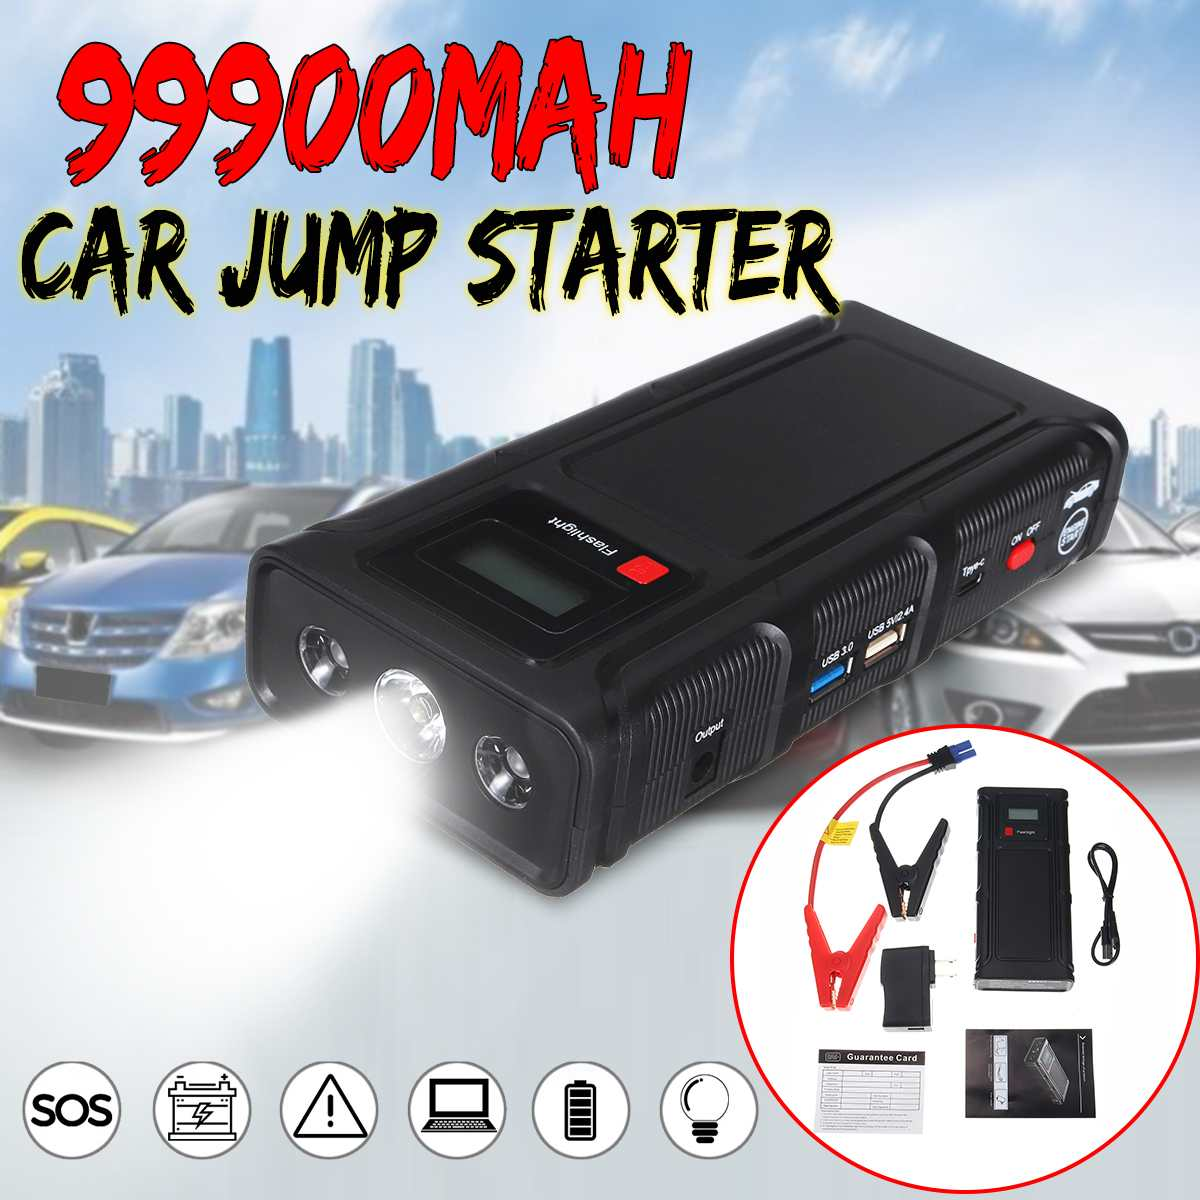 99900mAh Car Jump Starter Power Bank Portable Car Battery Booster Charger 12V Starting Device Petrol Diesel Car Starter Buster